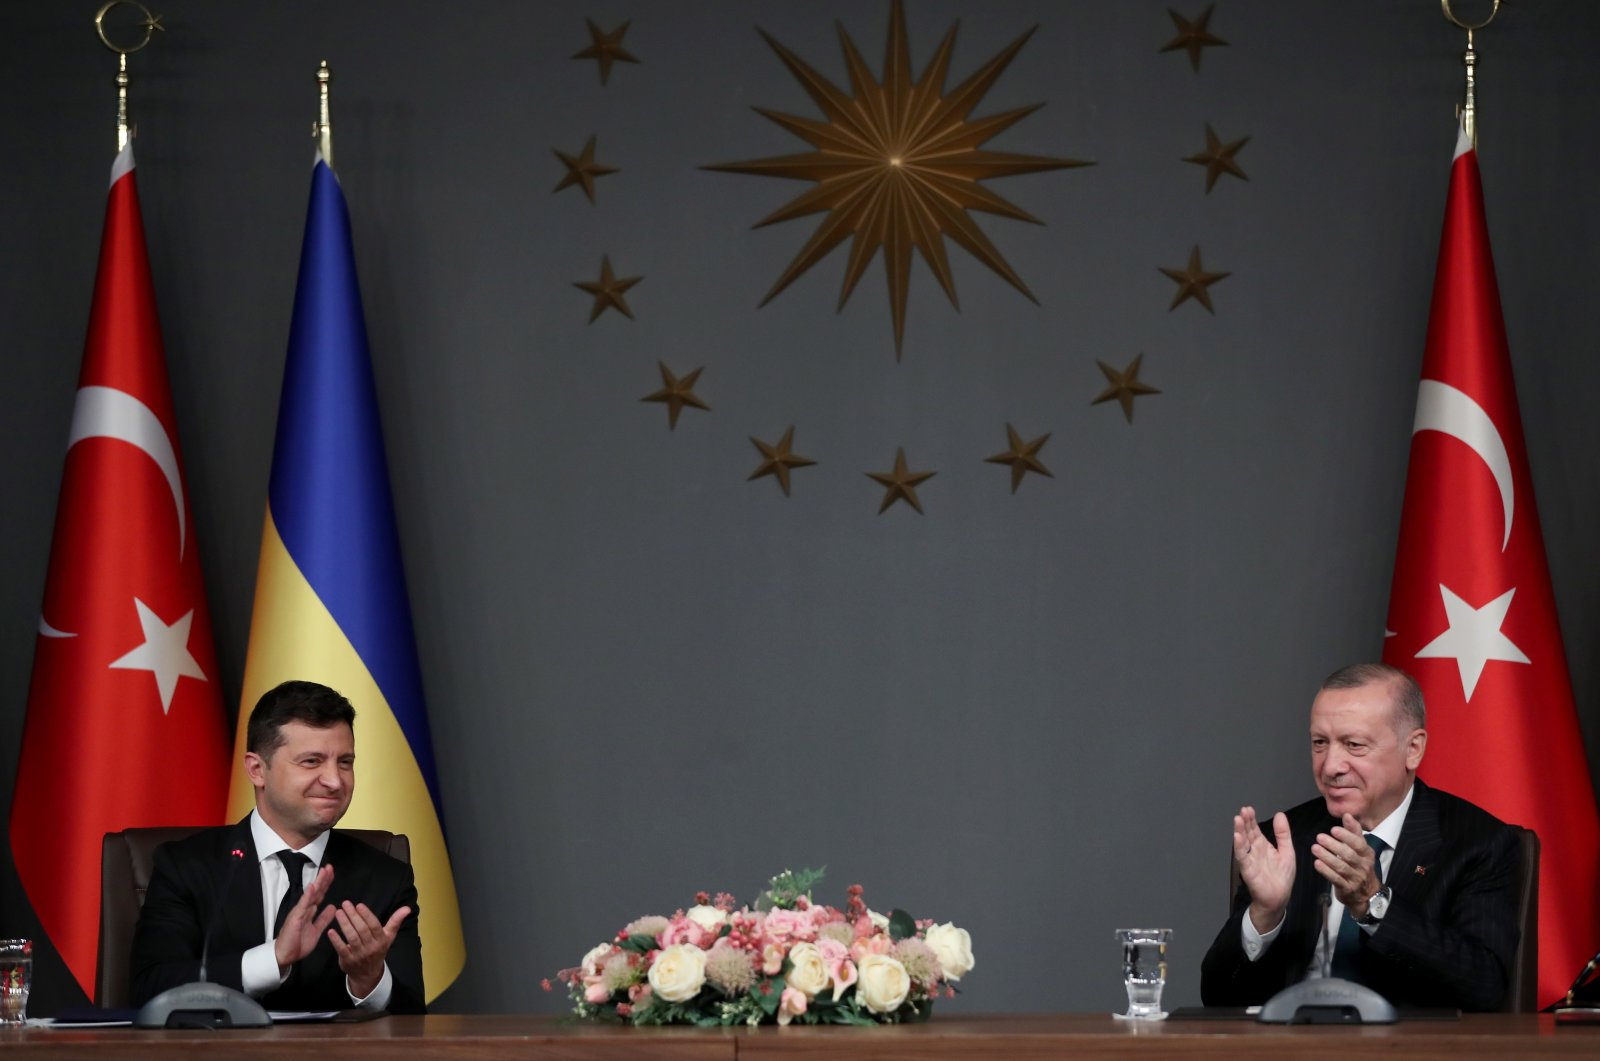 Ukraine's President Volodymyr Zelenskiy (L) and President Recep Tayyip Erdoğan (R) attend the signing ceremony after their meeting in Istanbul, Turkey, Oct. 16, 2020. (EPA Photo)